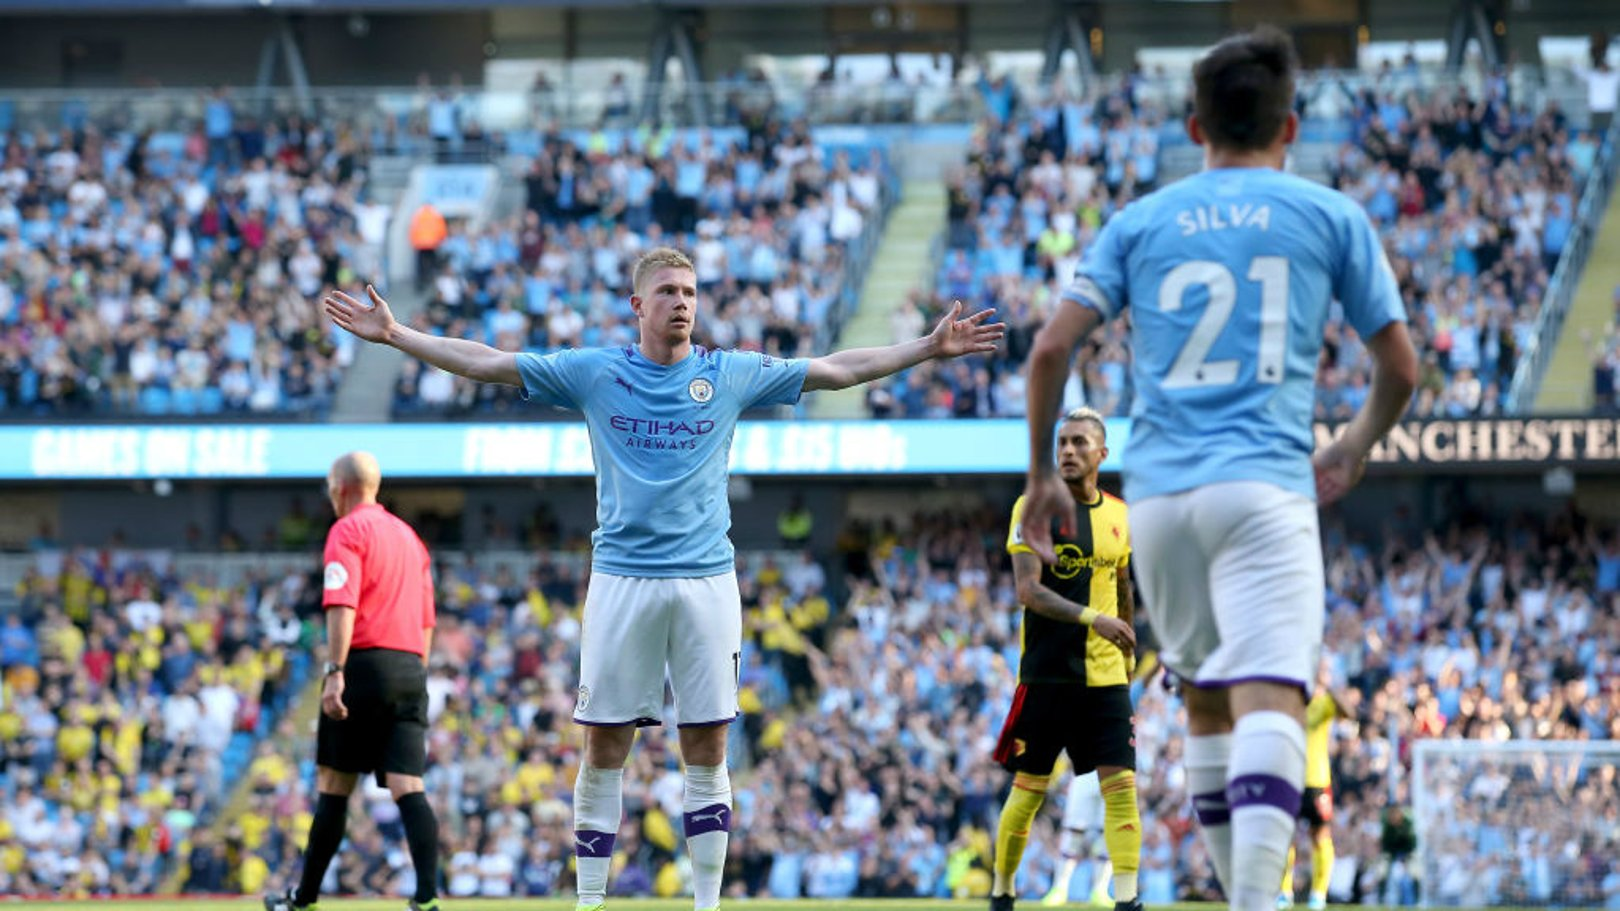 STANDING TALL: Kevin De Bruyne takes the Etihad's applause.